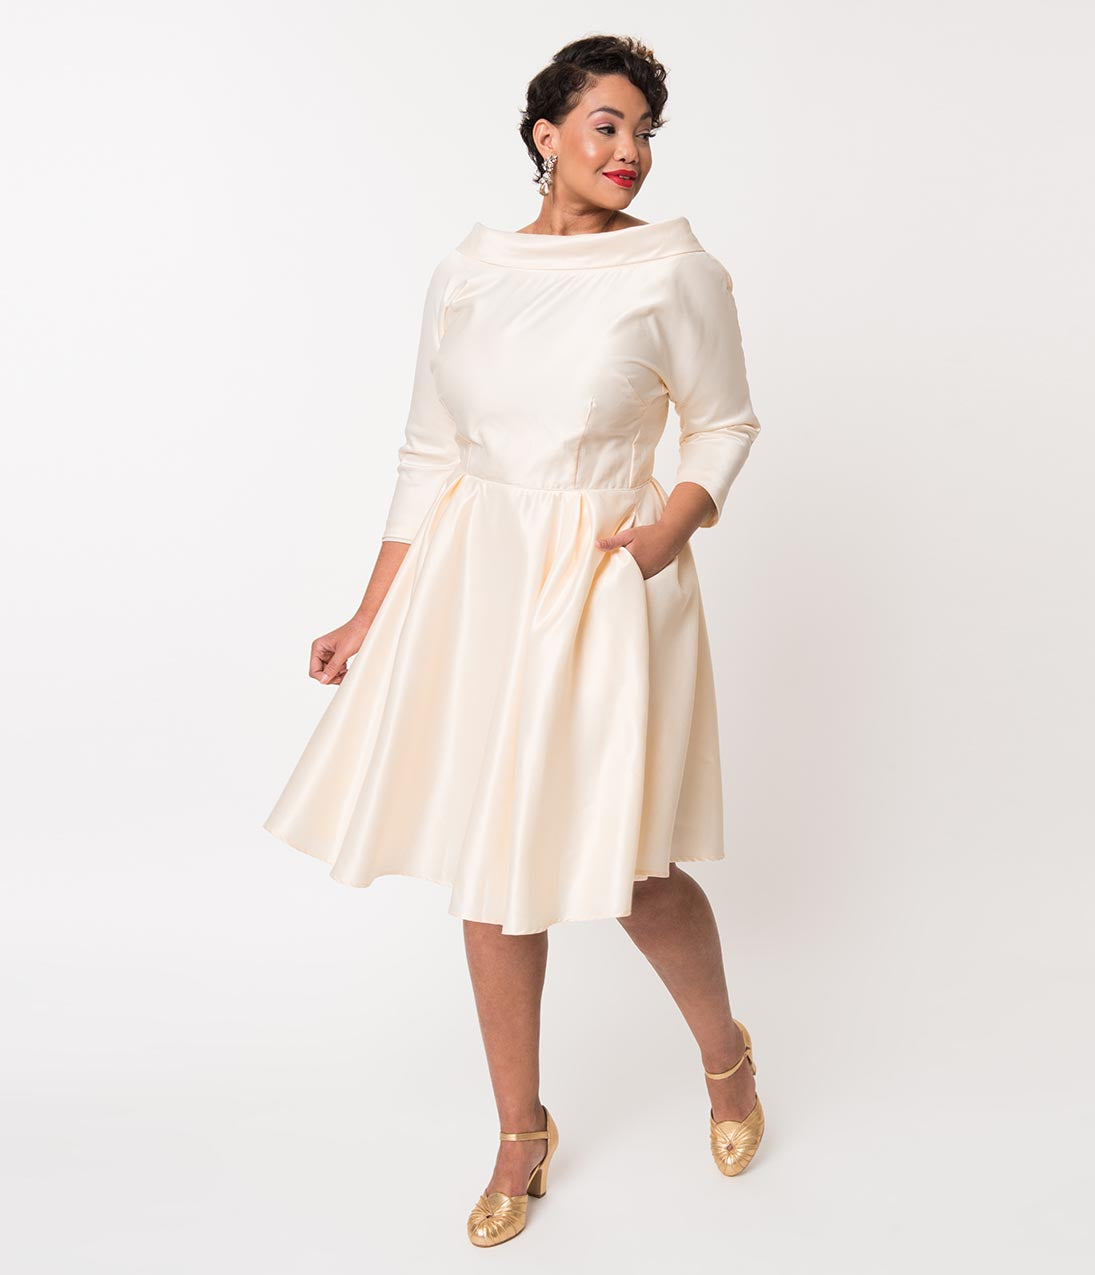 Vintage Inspired Wedding Dress | Vintage Style Wedding Dresses Unique Vintage Plus Size 1950S Style Cream Satin Sleeved Lana Bridal Dress $128.00 AT vintagedancer.com